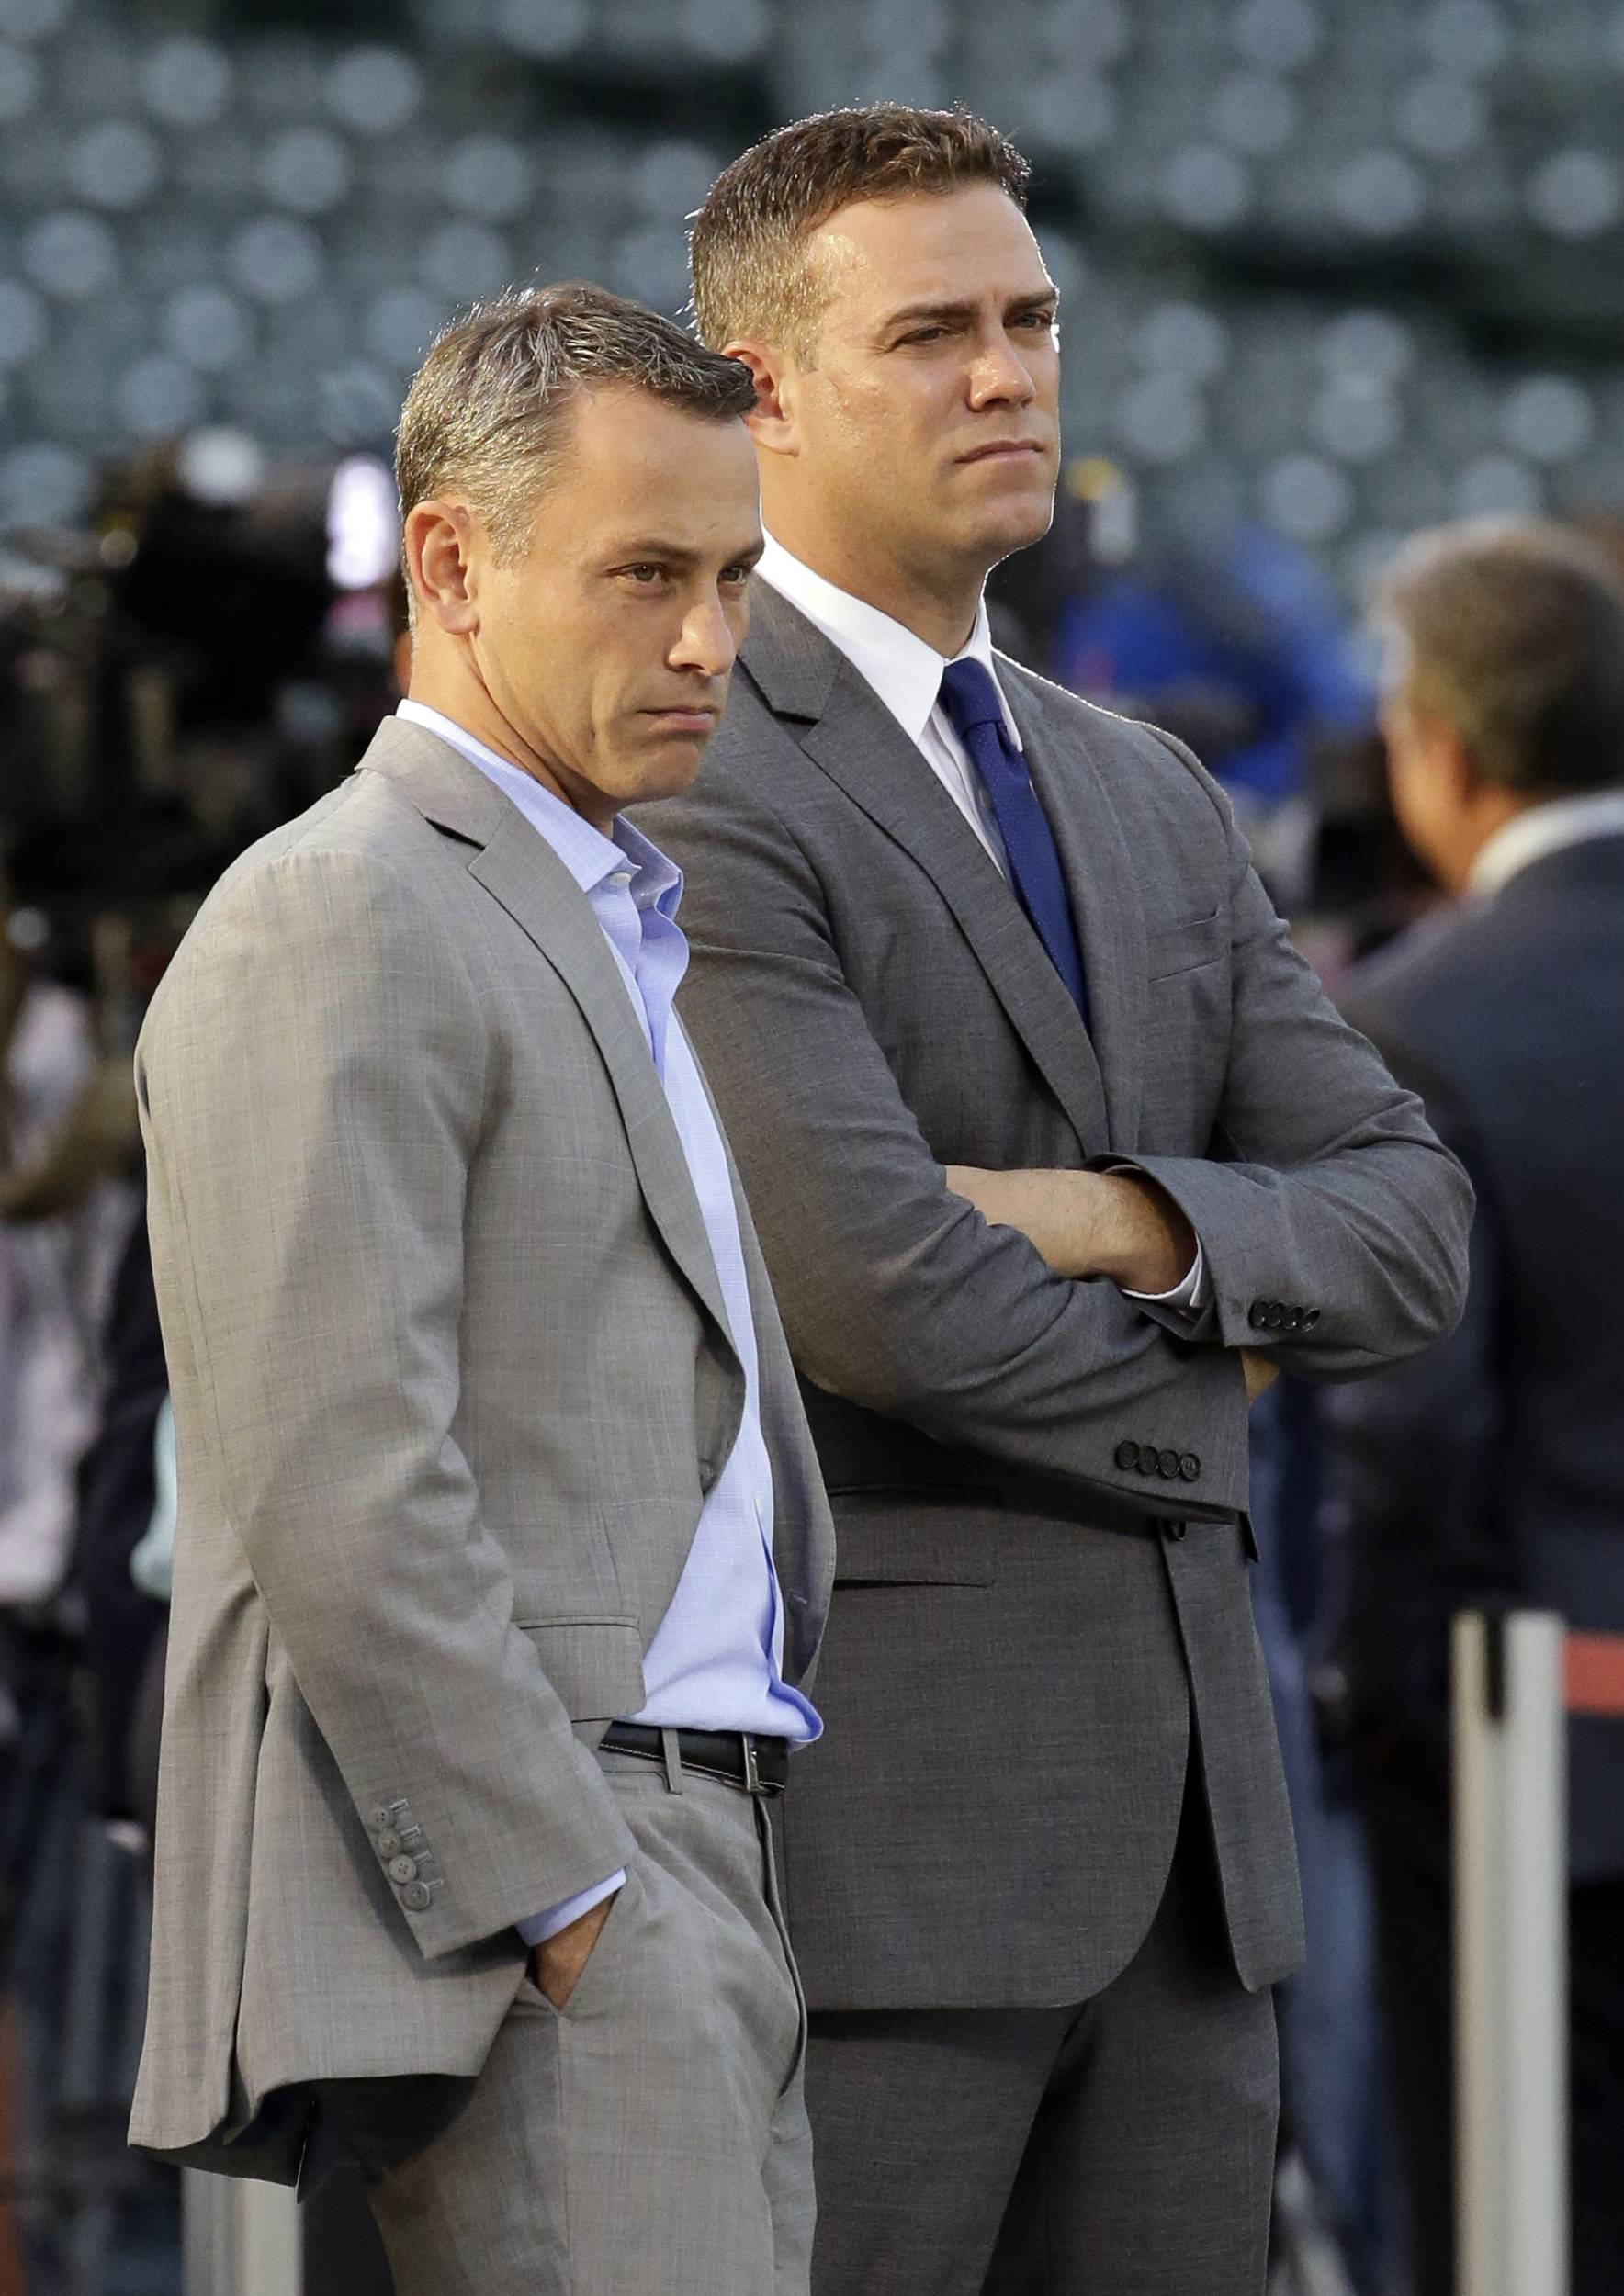 Chicago Cubs president of baseball operations Theo Epstein, right, has agreed to a five-year contract with the team. At left is general manager Jed Hoyer.